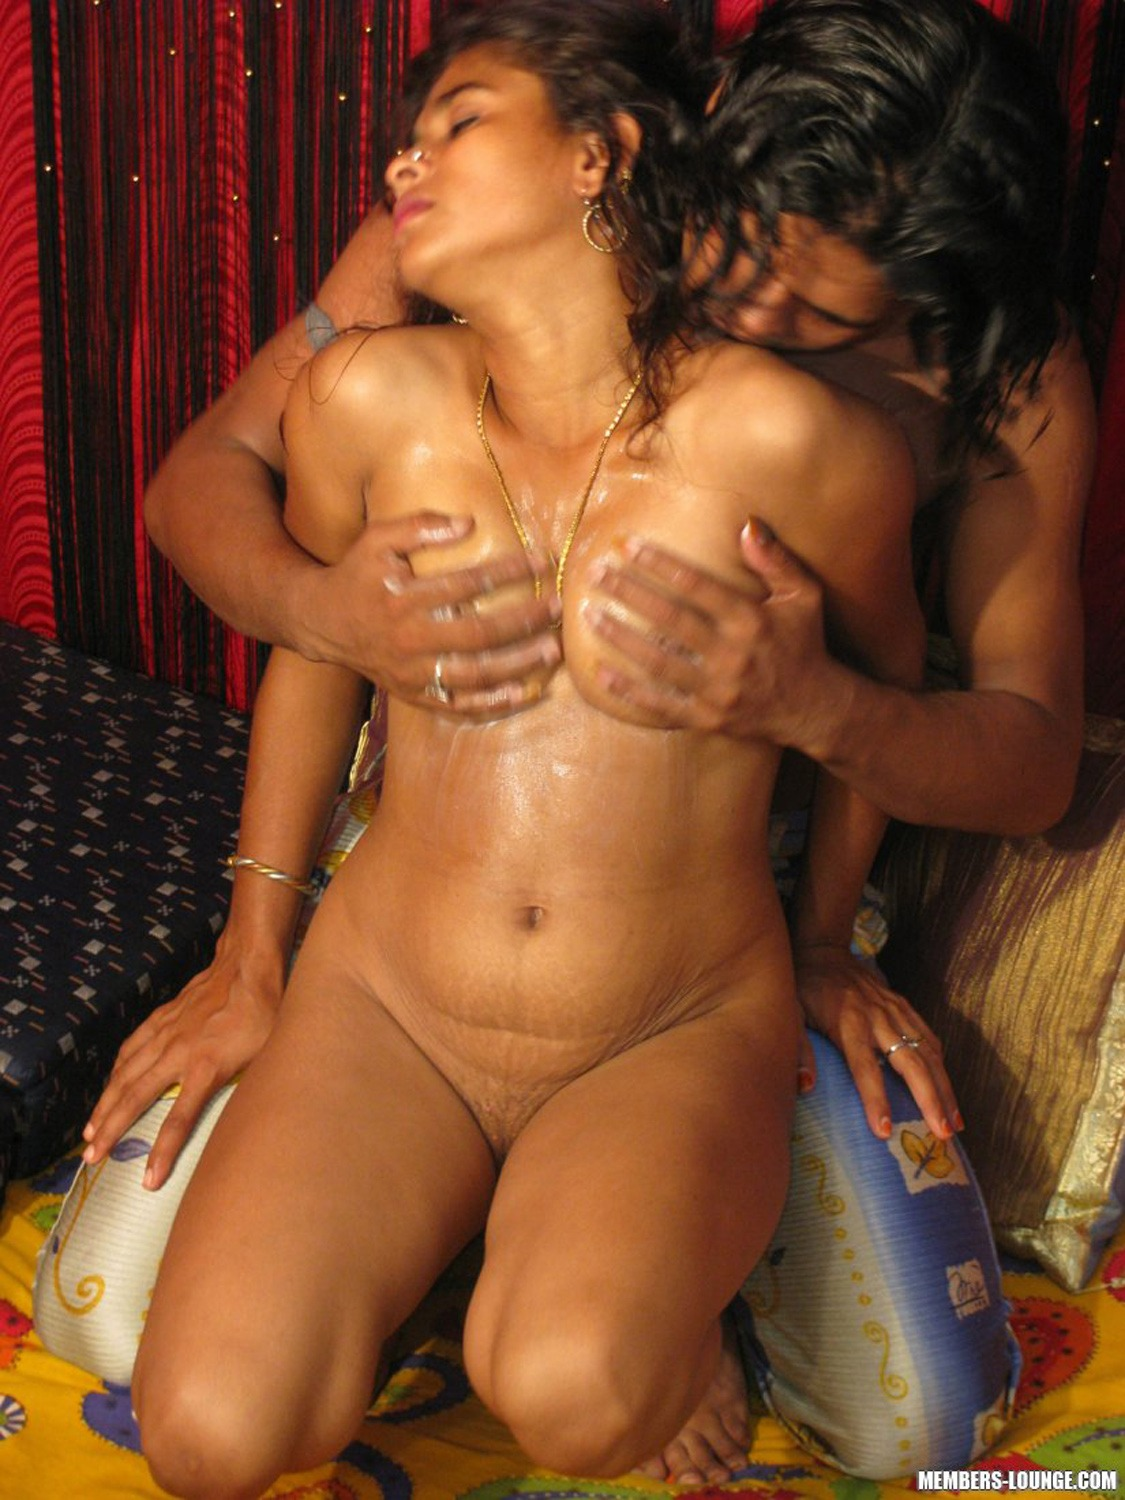 xxx hot desi chudai tumblr